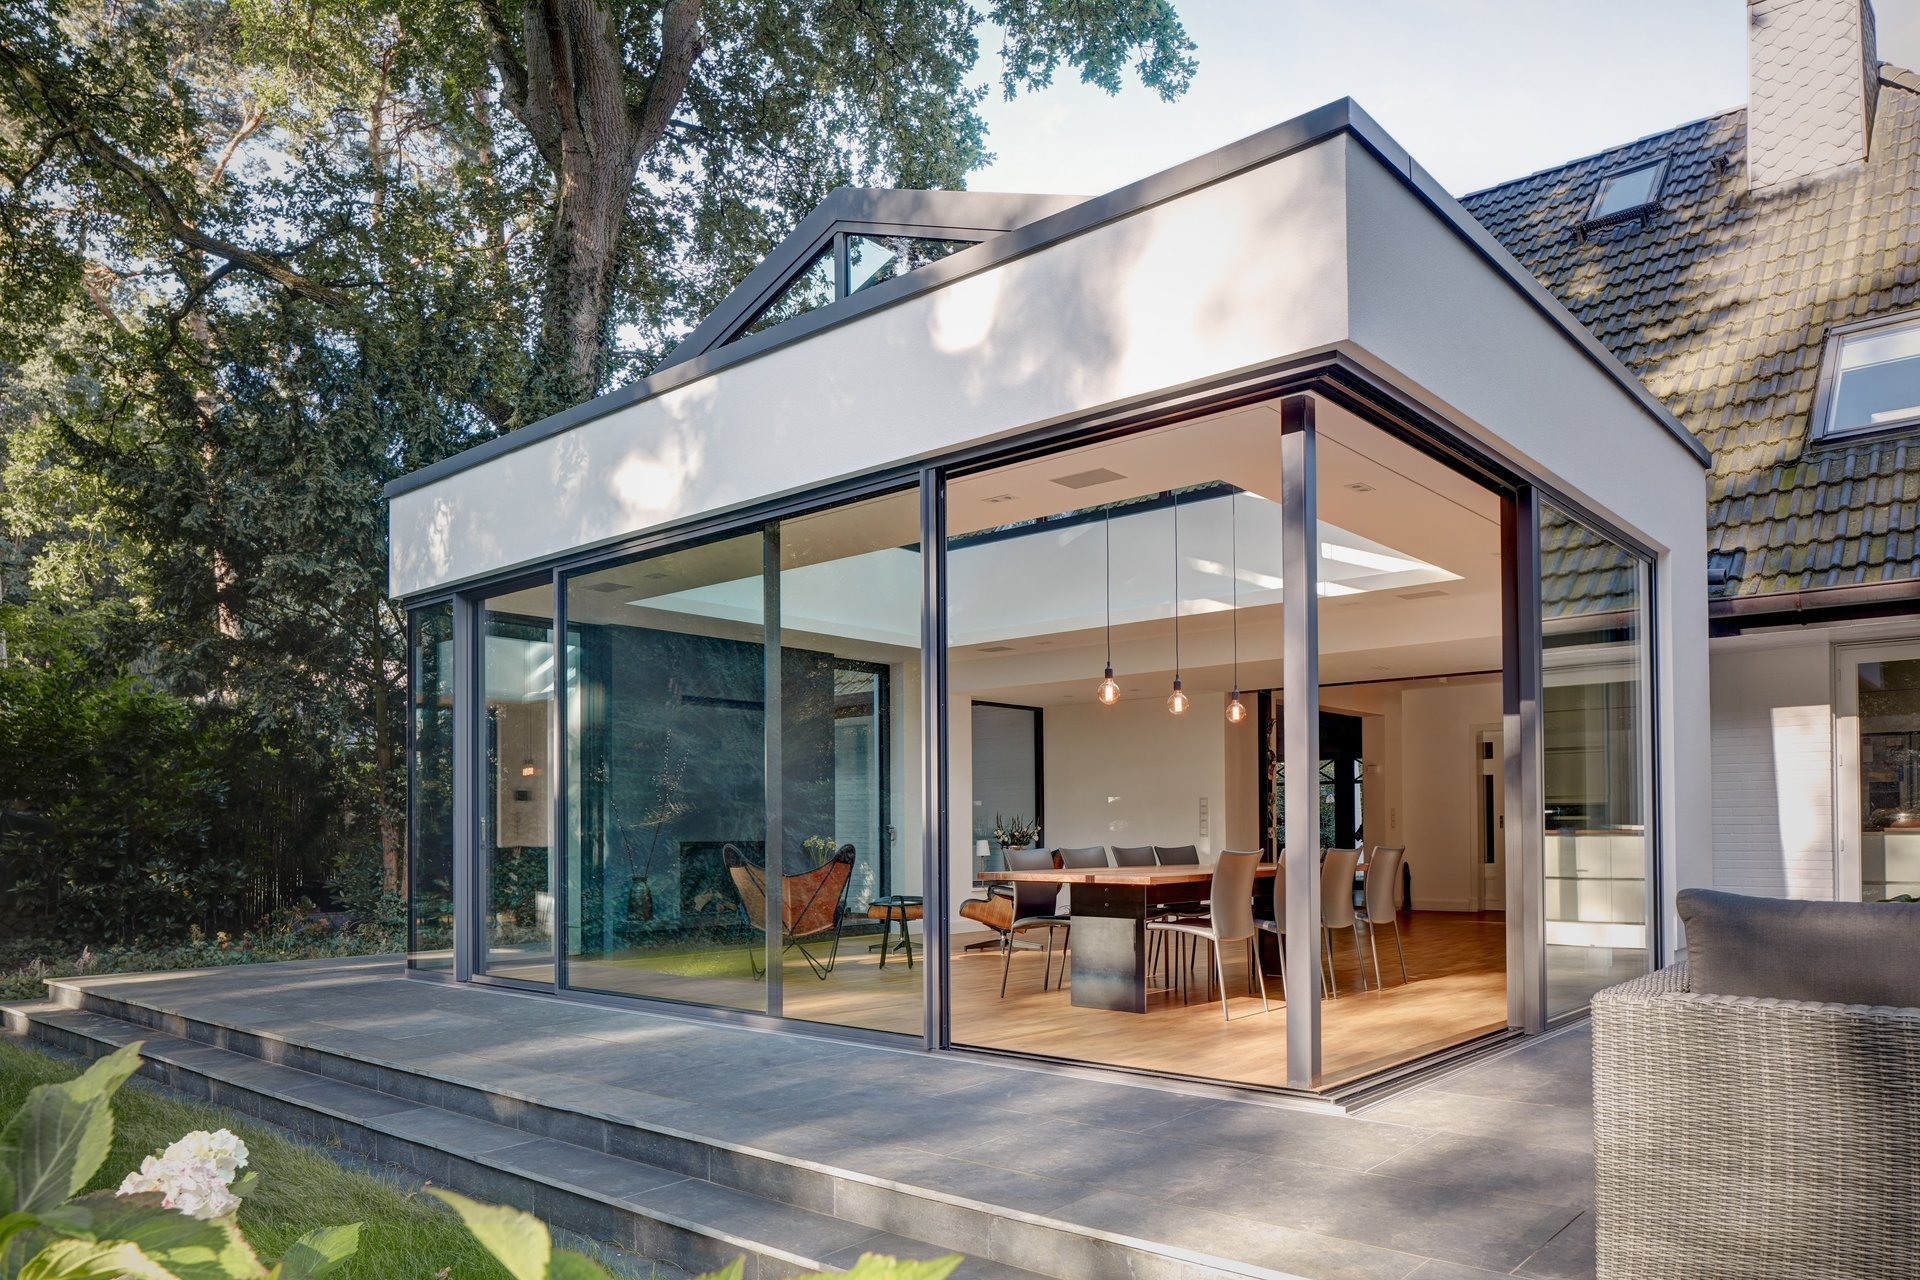 Solarlux Melle nordic designs solarux bi fold and sliding doors in south